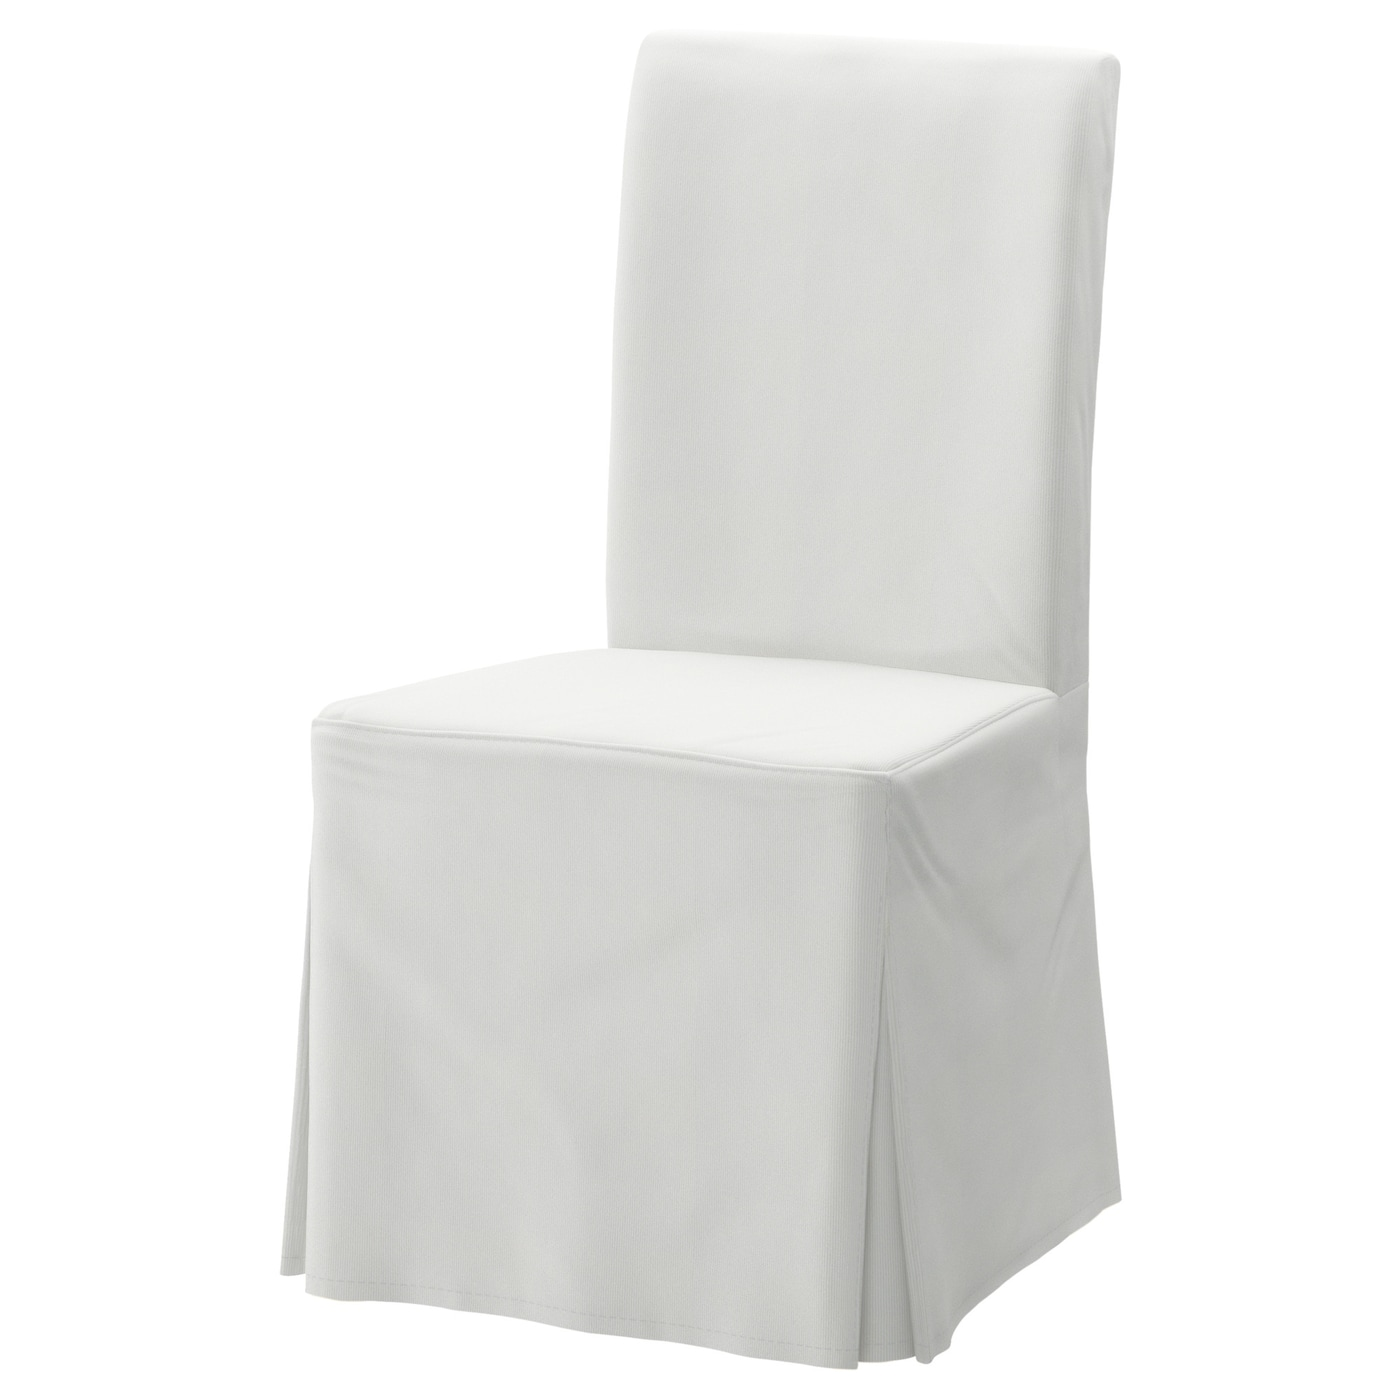 Dining Chair Covers IKEA Dublin Ireland : henriksdal chair cover long blekinge white0143756pe303255s5 from www.ikea.com size 2000 x 2000 jpeg 286kB